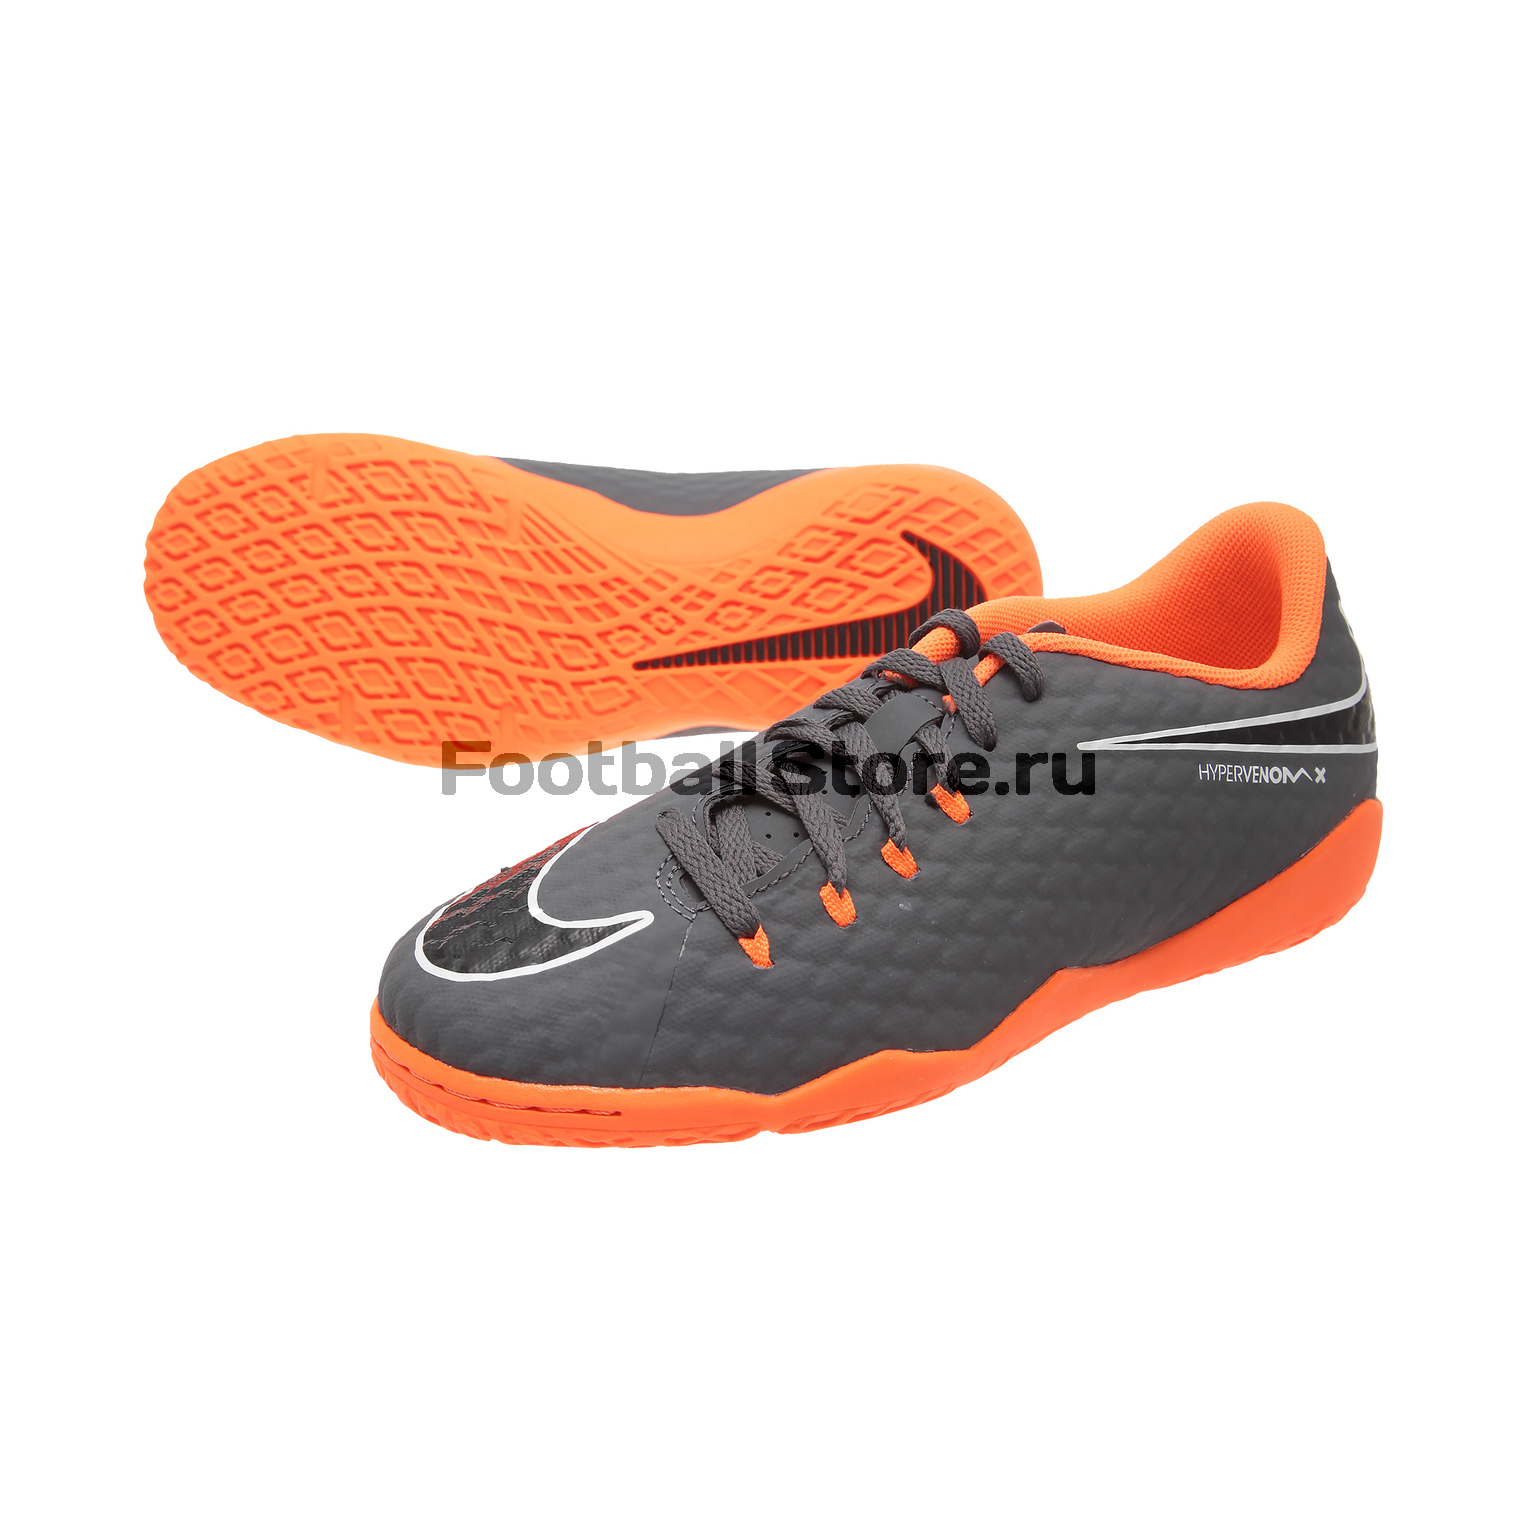 Обувь для зала Nike JR PhantomX 3 Academy IC AH7295-081 бутсы nike phantom 3 academy ag pro ah8845 081